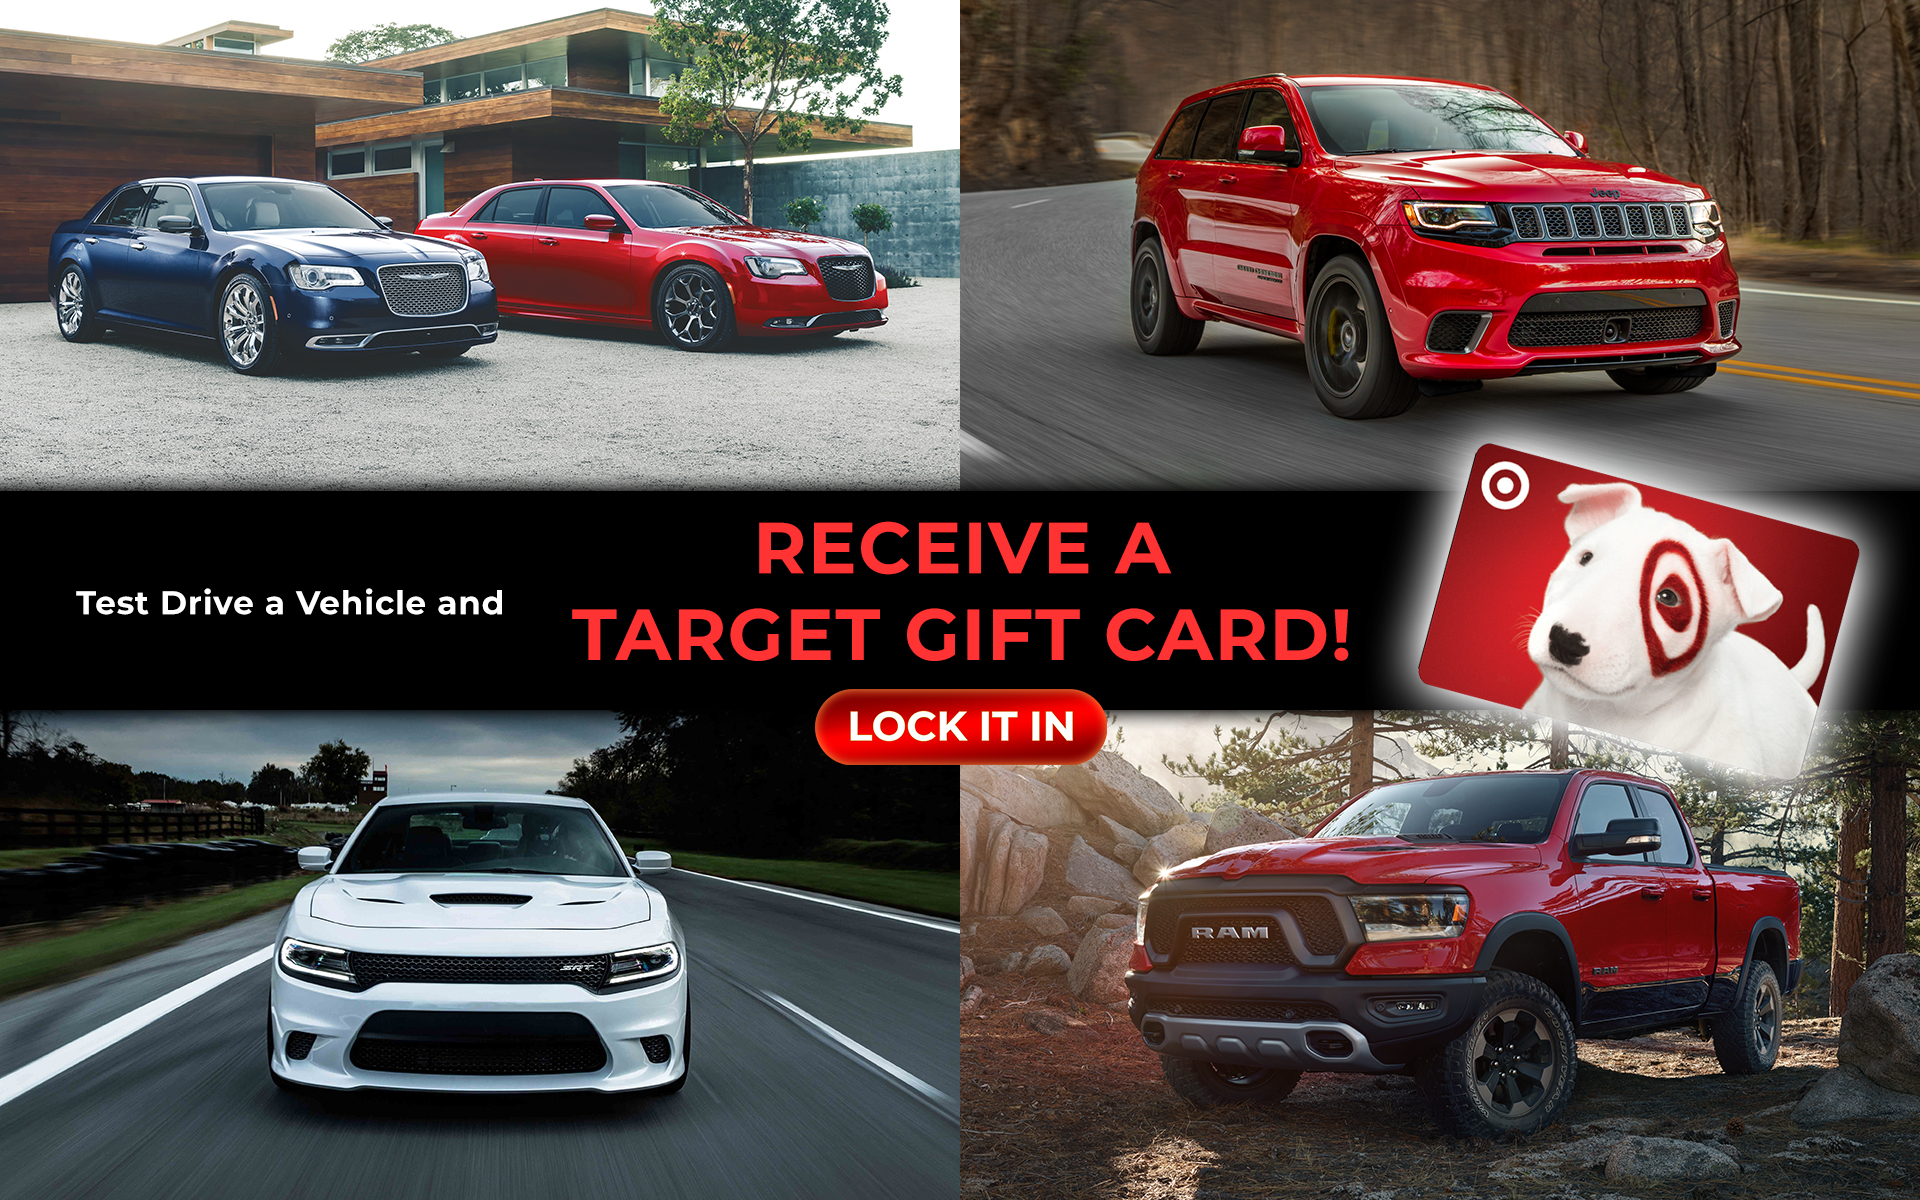 Test drive a vehicle and receive a target gift card!